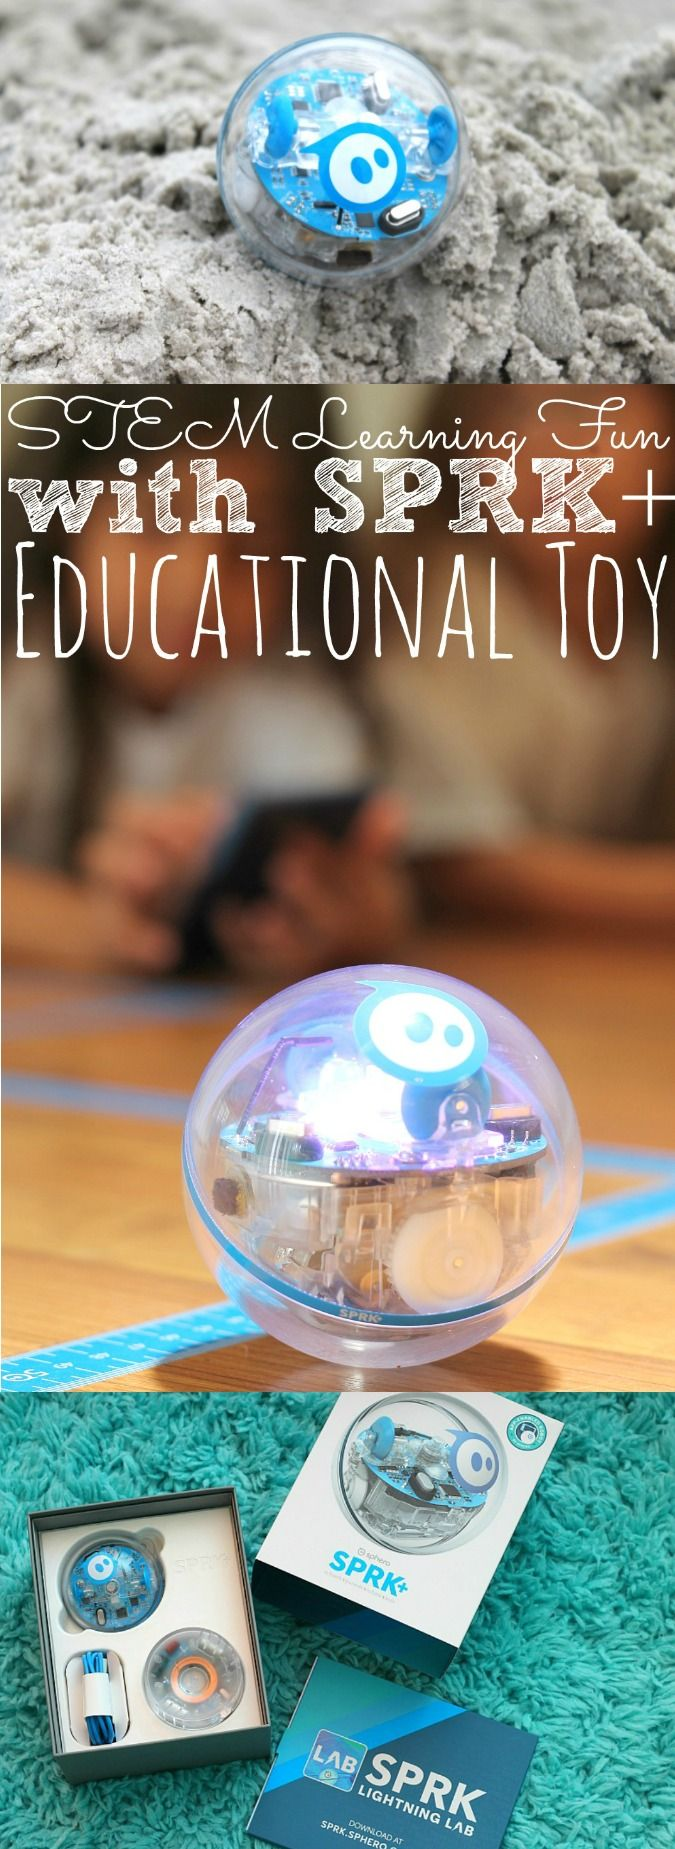 STEM Learning Fun With SPRK+ Educational Toy - (ad) abccreativelearning.com